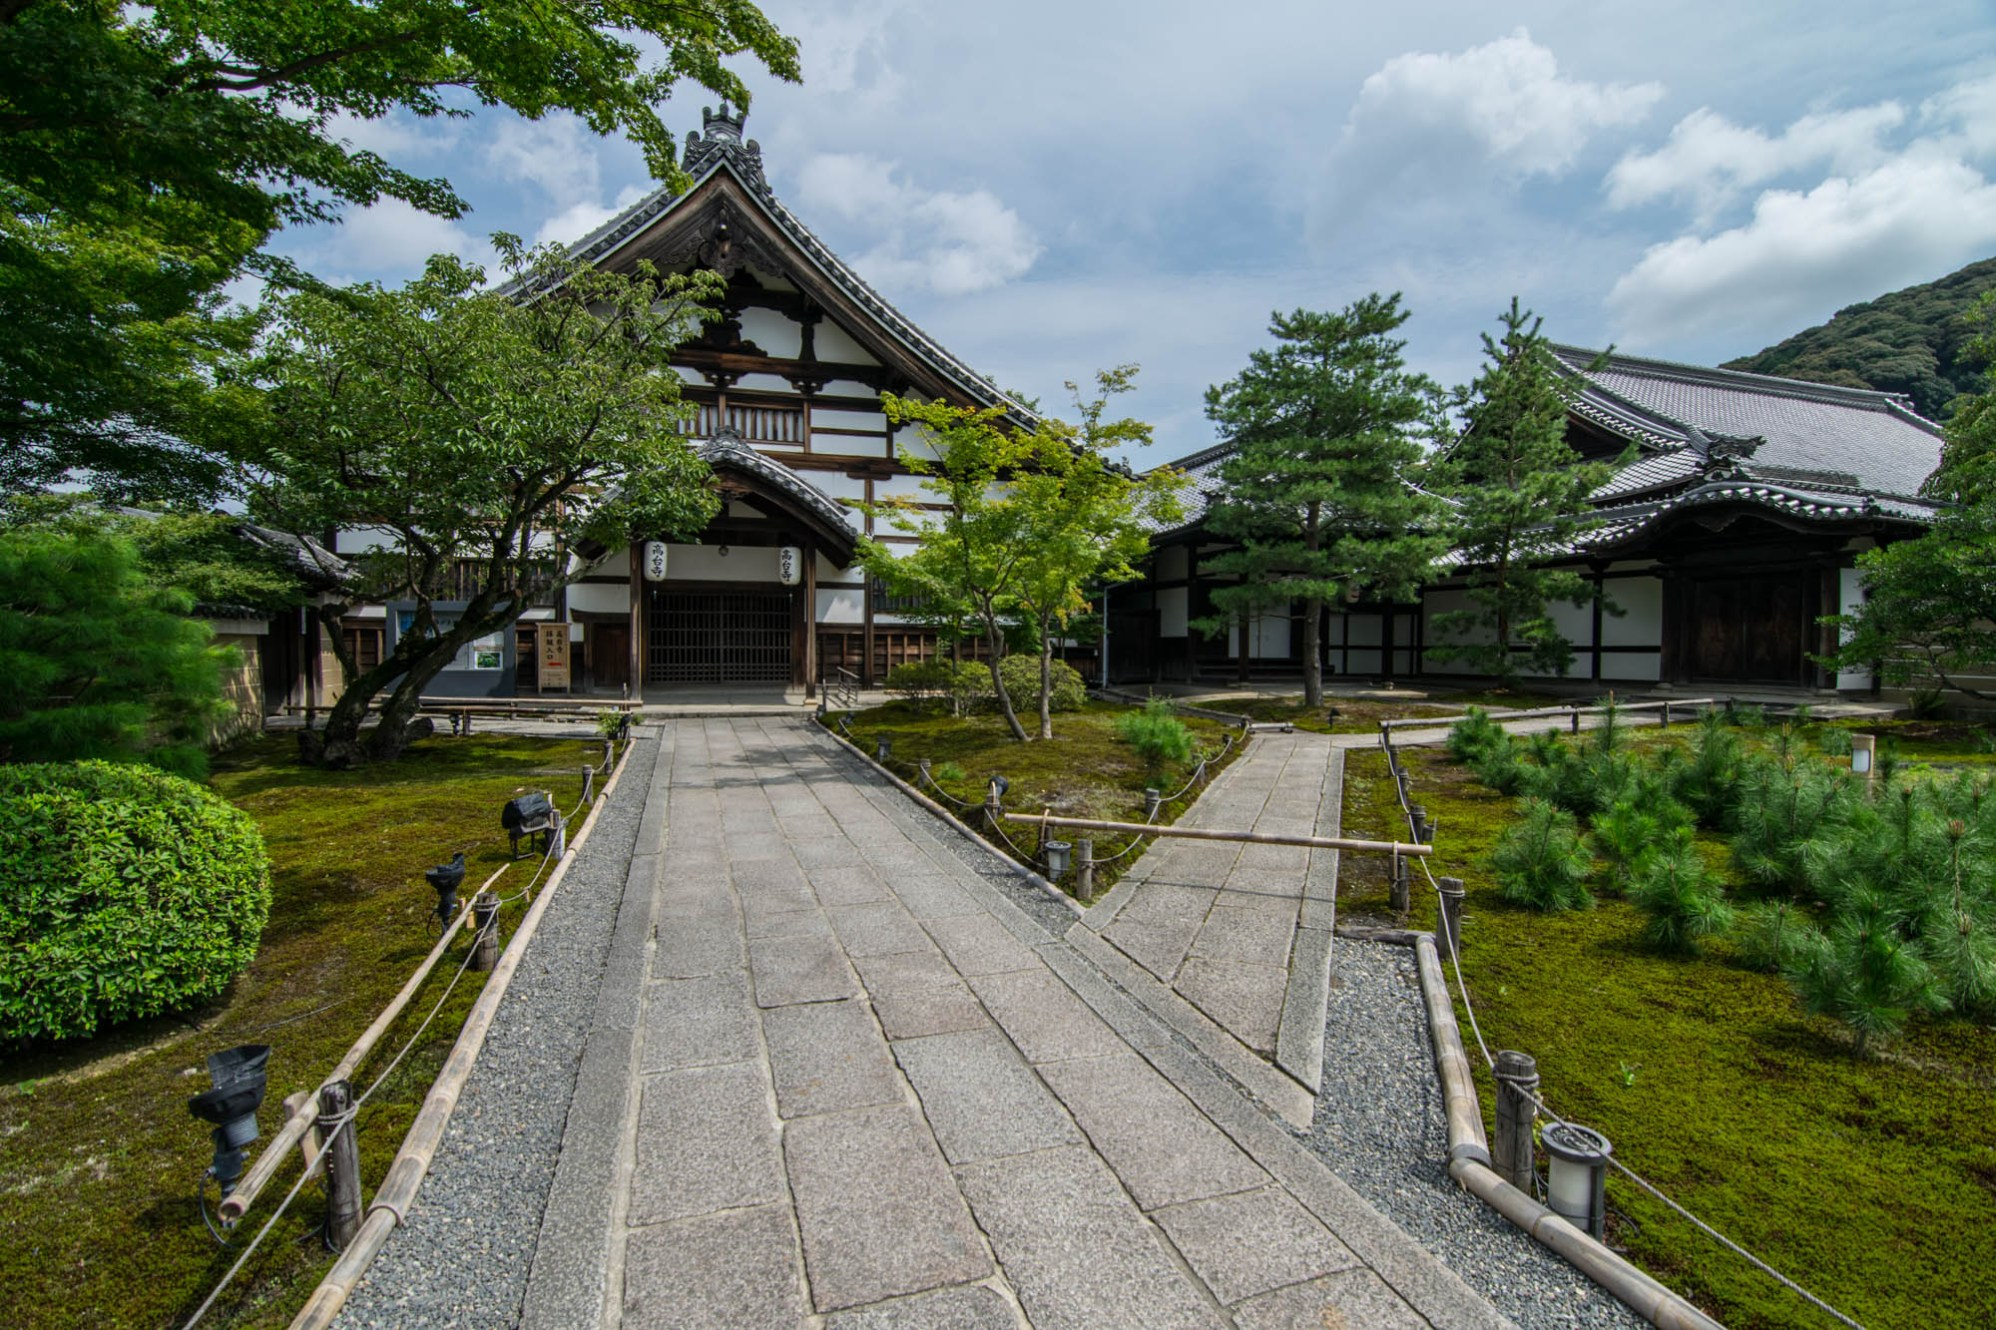 A brick pathway forks towards two two traditional Japanese temples in green garden.